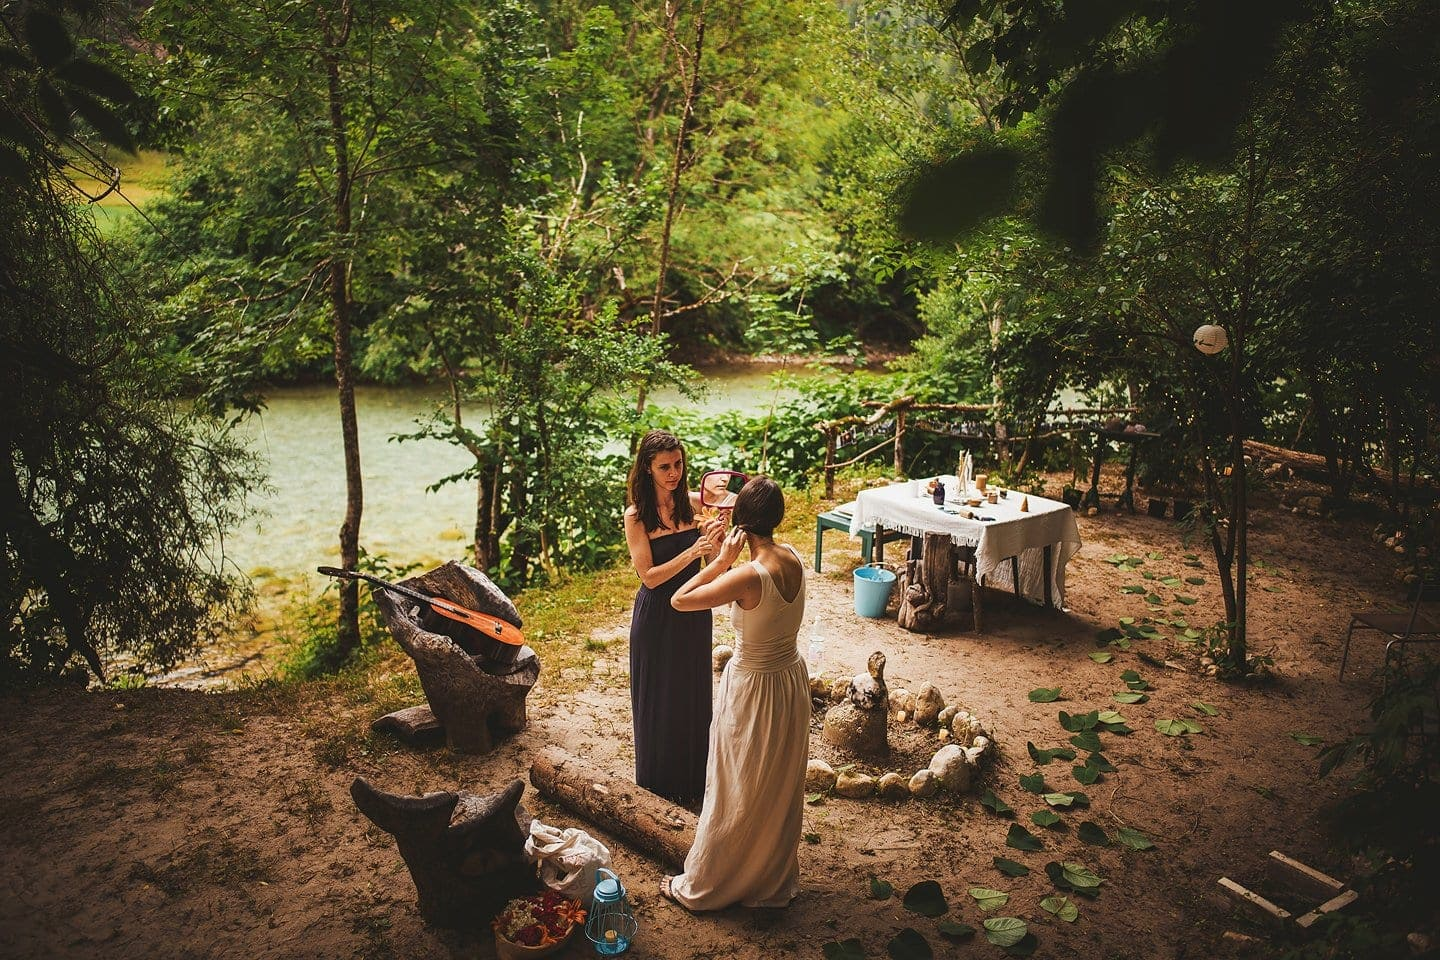 bride getting ready at wedding in the forest